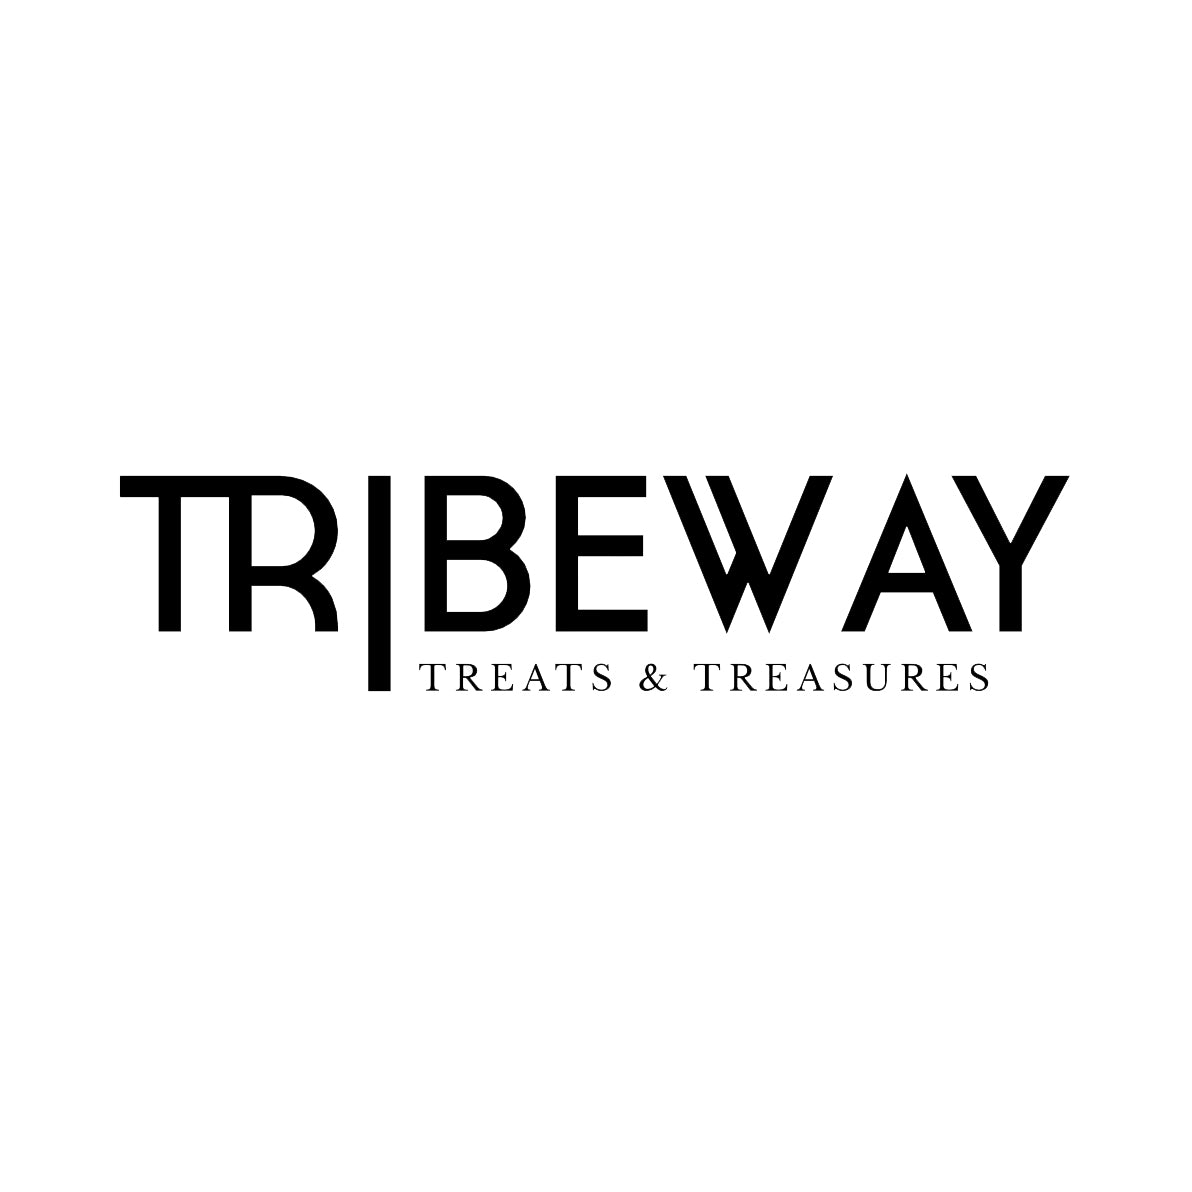 Tribeway Treats & Treasures